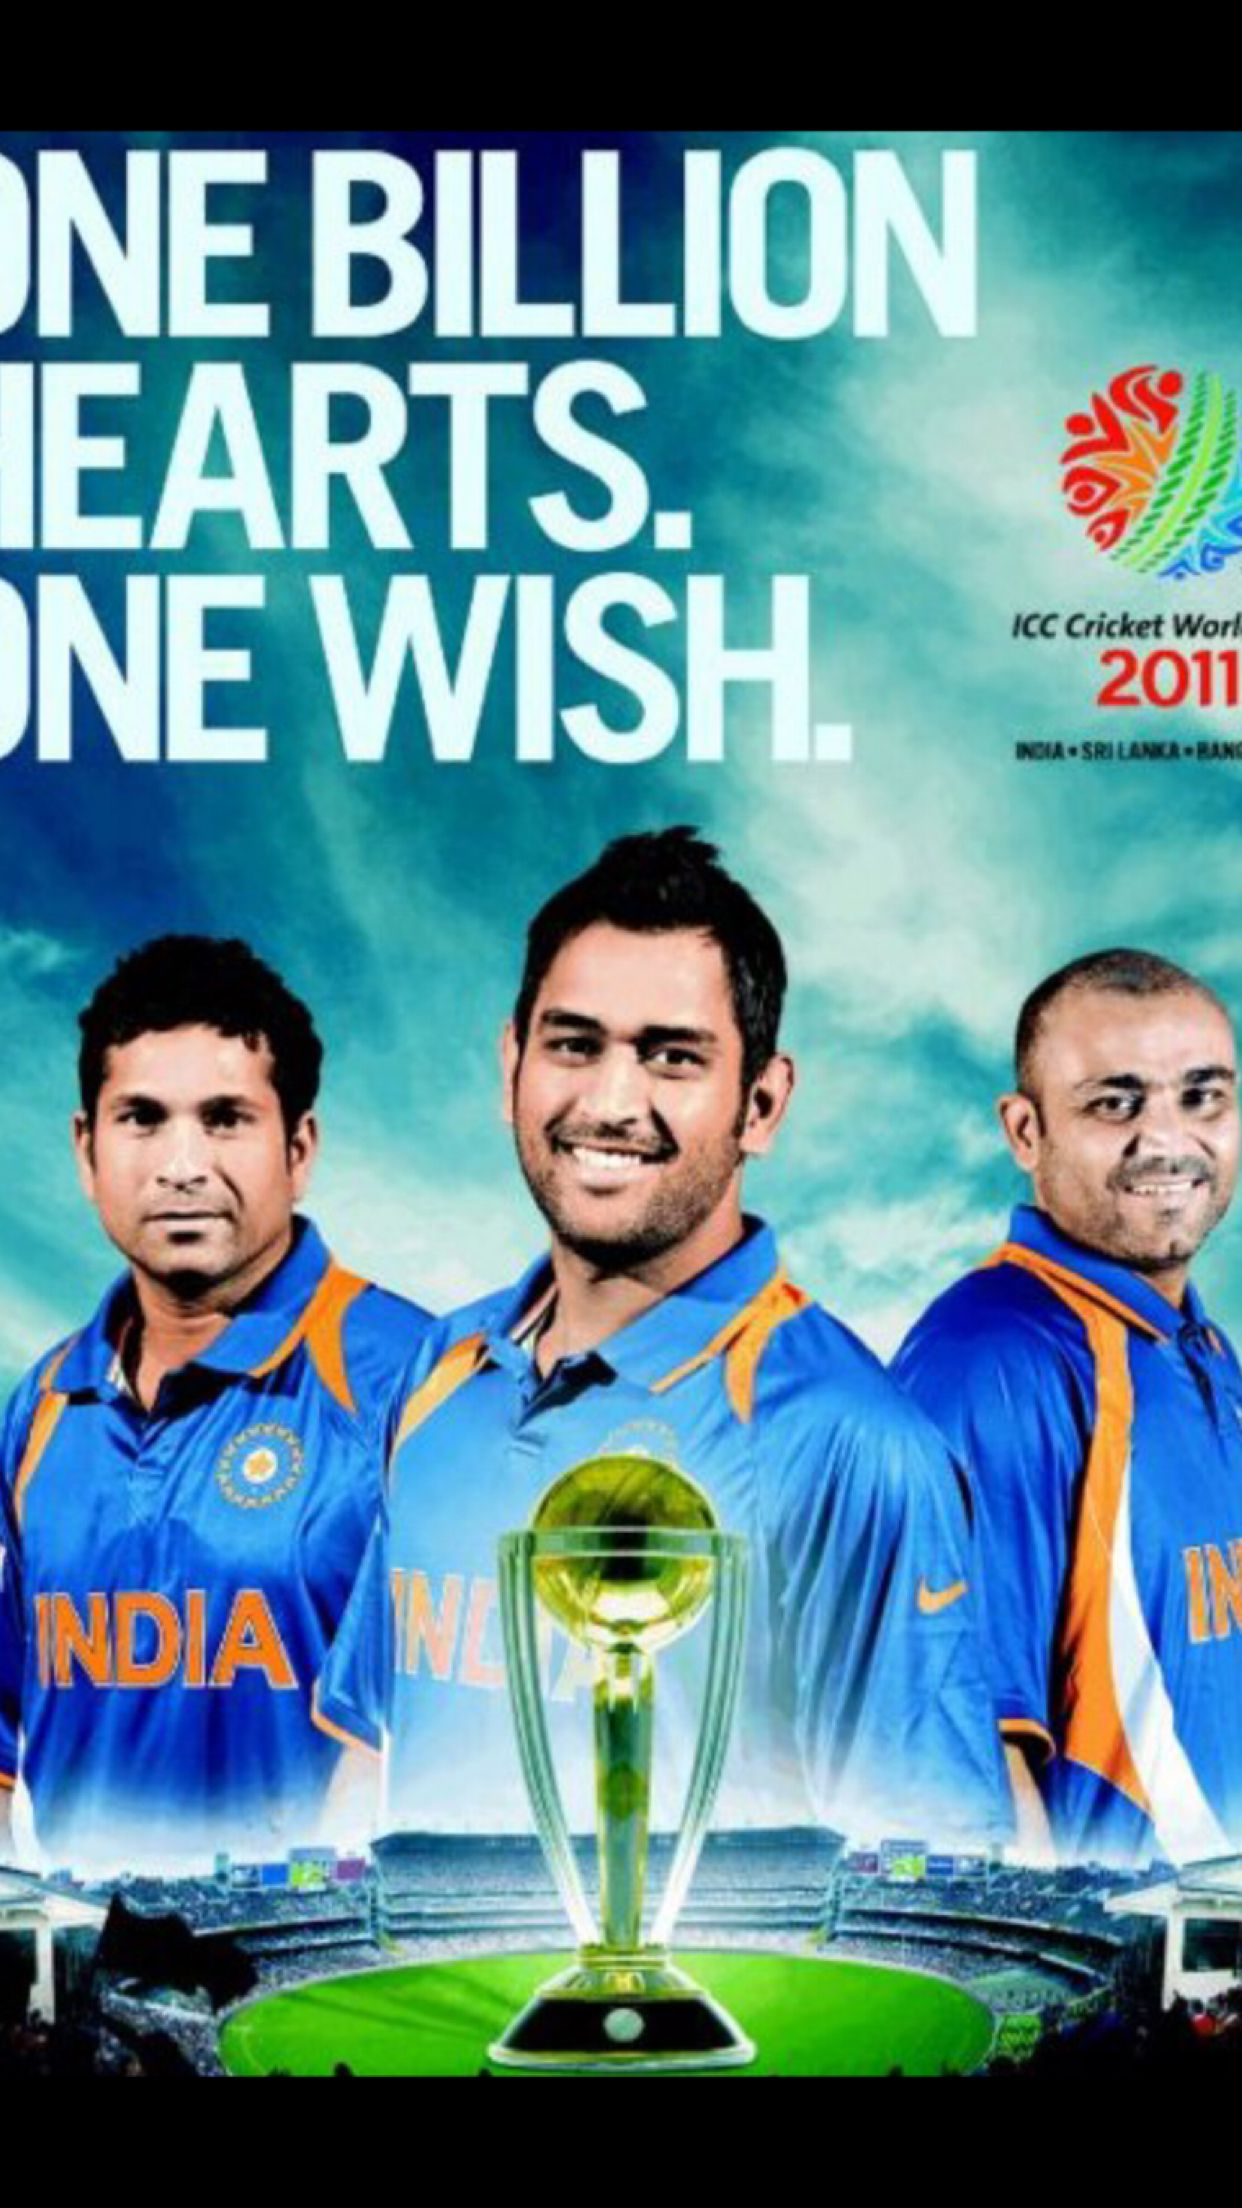 Pin By Vishwa Gaddamanugu On Vishwa World Cup Cricket World Cup World